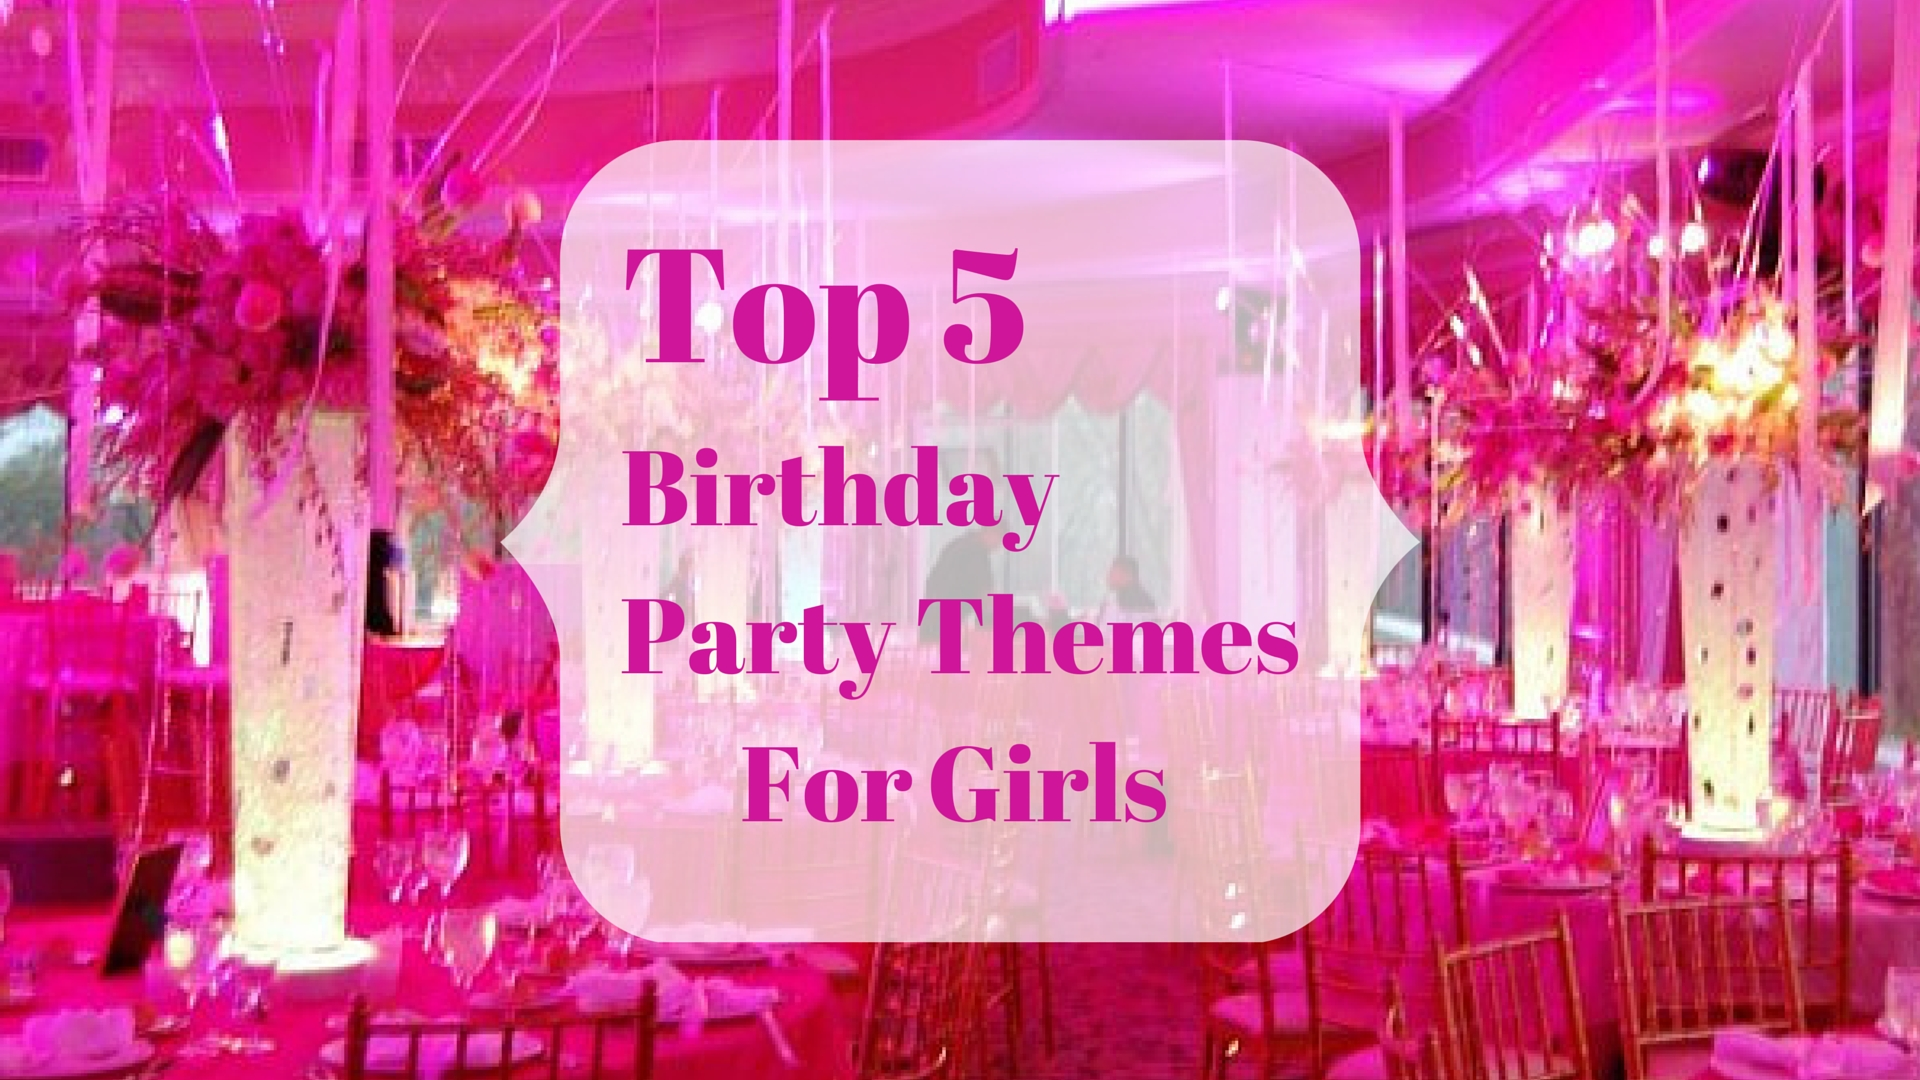 10 Stunning 10 Year Girl Birthday Party Ideas top 5 birthday party themes for girls 2021